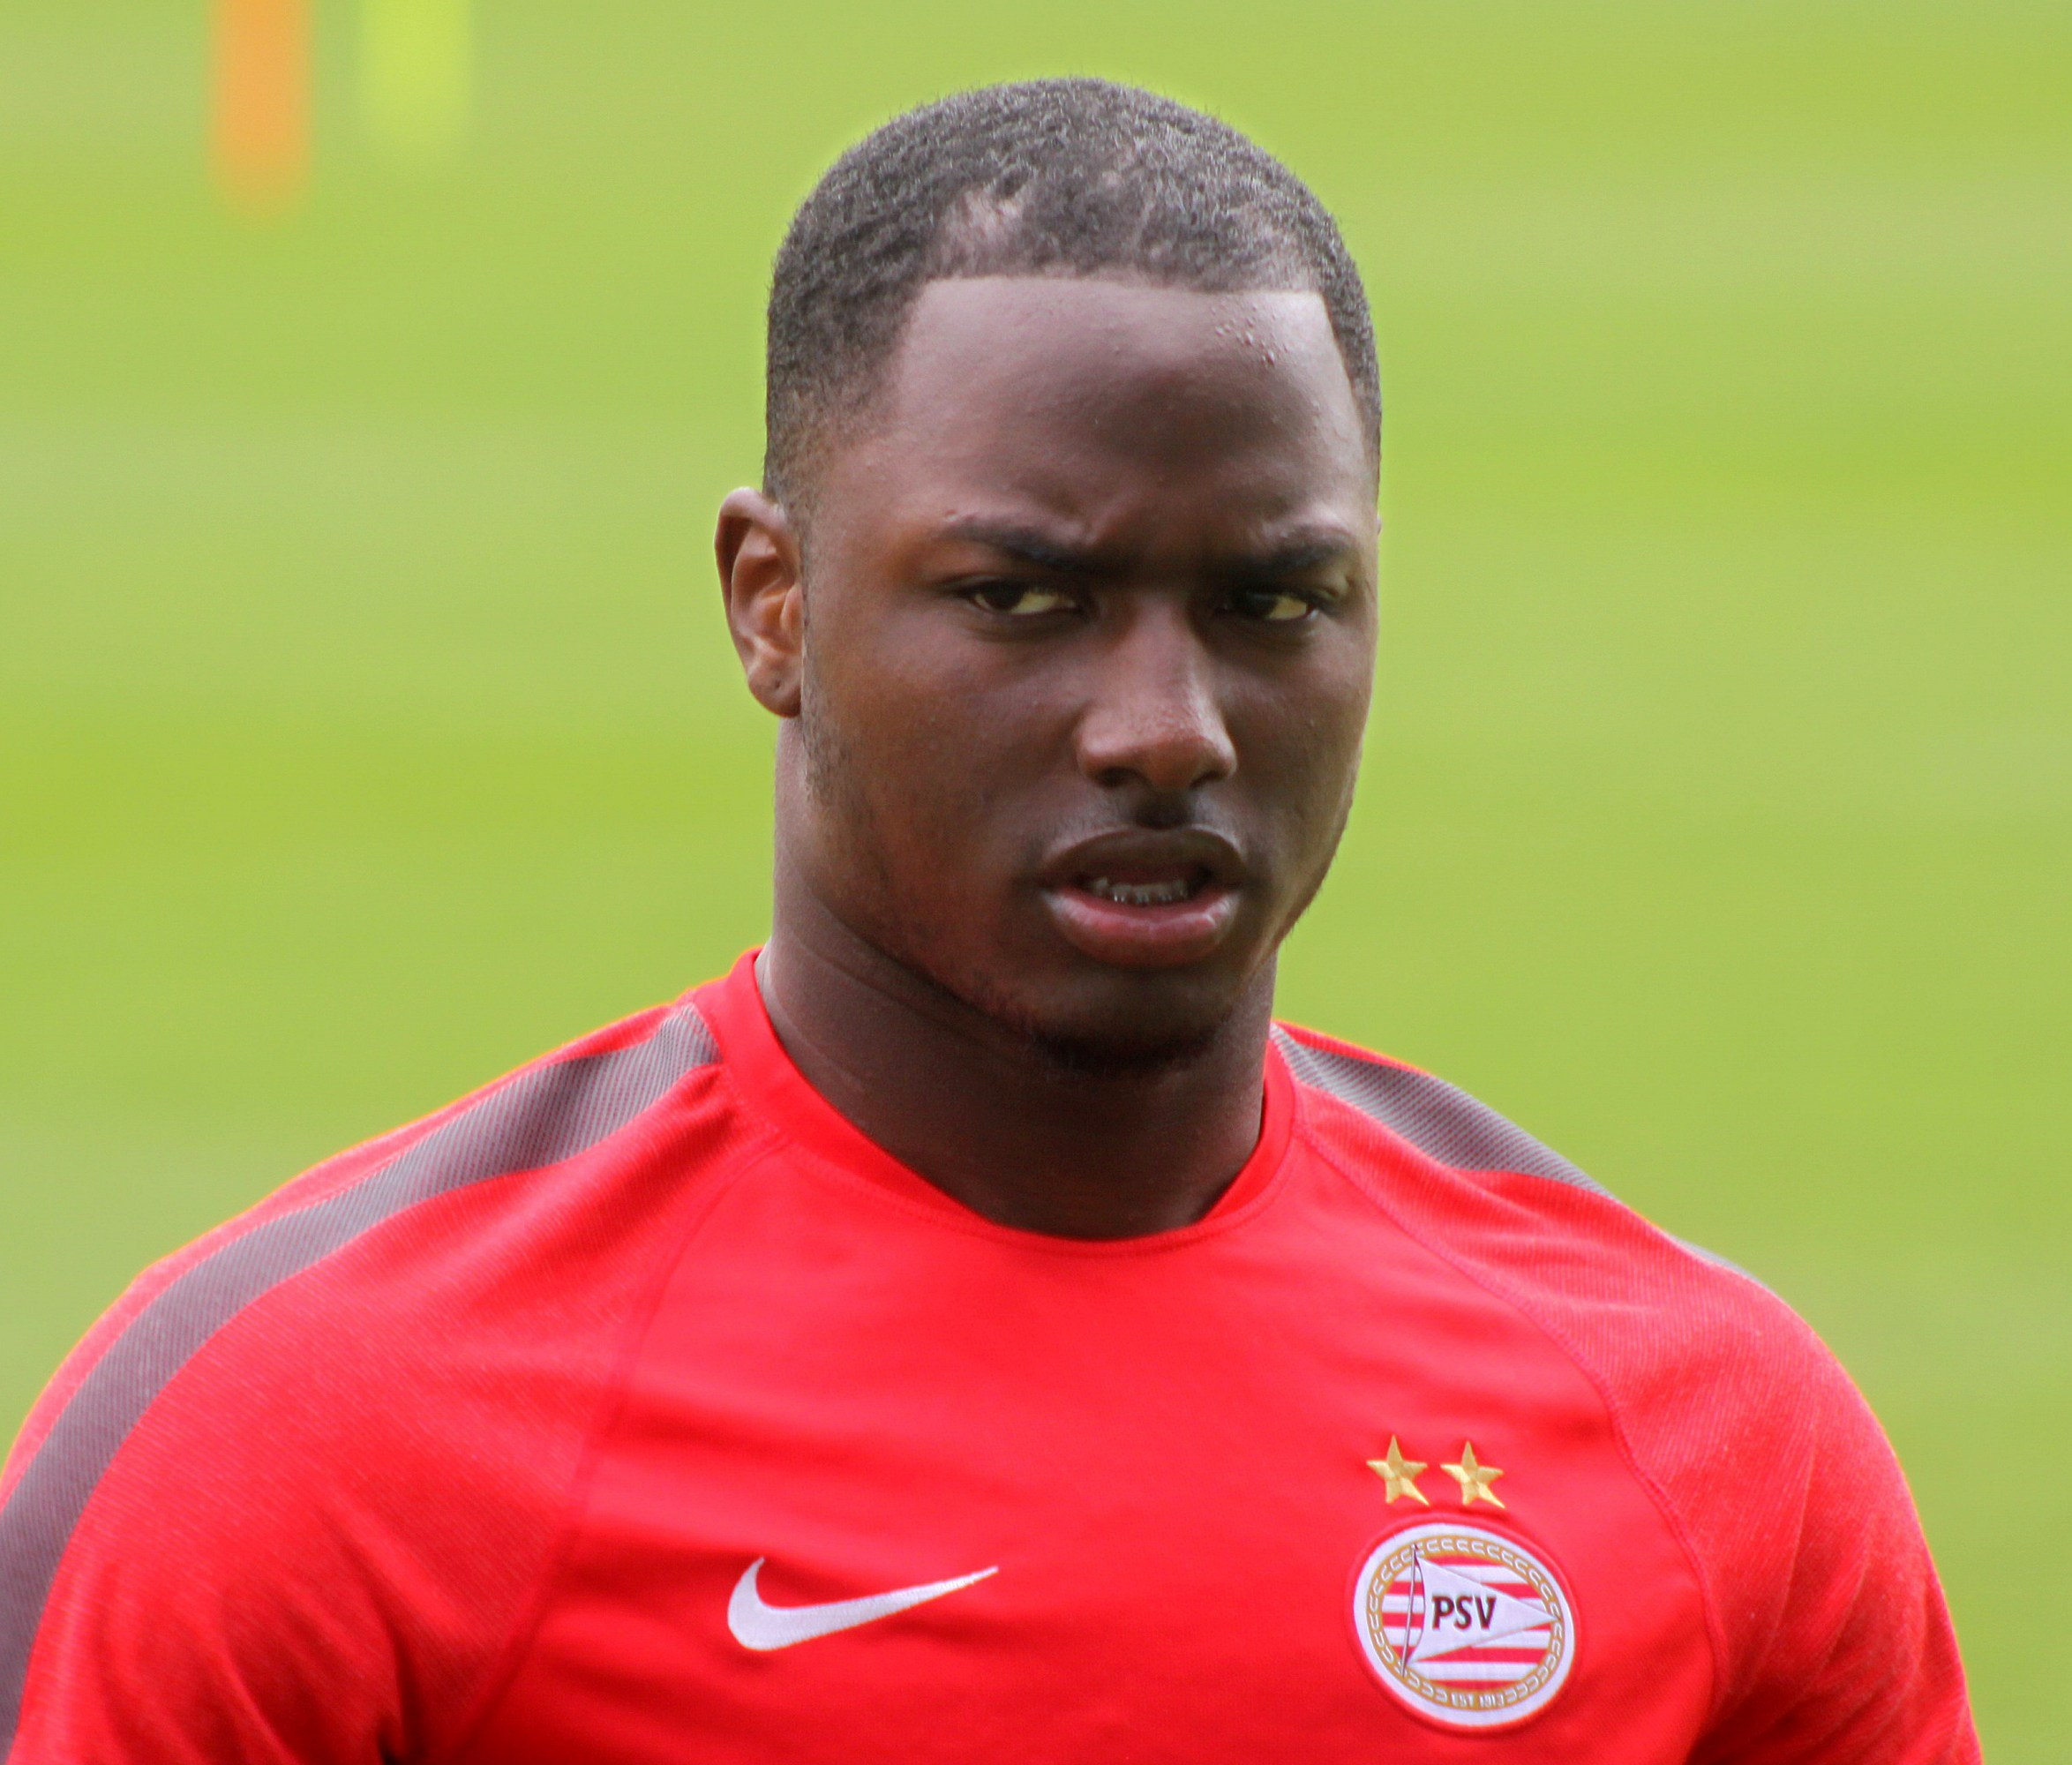 The 24-year old son of father (?) and mother(?) Jetro Willems in 2018 photo. Jetro Willems earned a  million dollar salary - leaving the net worth at 2 million in 2018